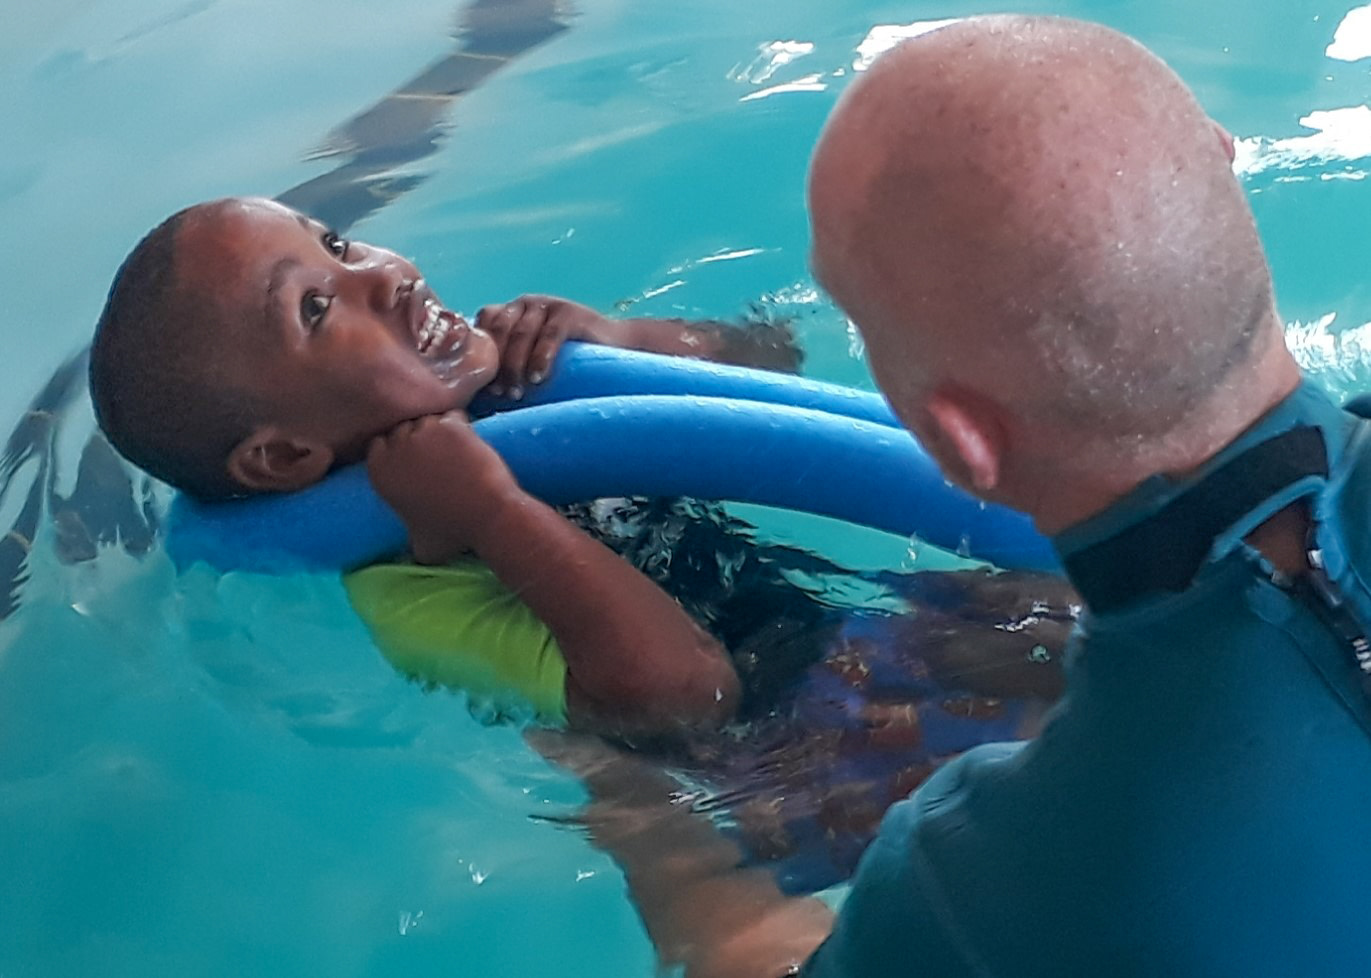 Edward in the pool with a student